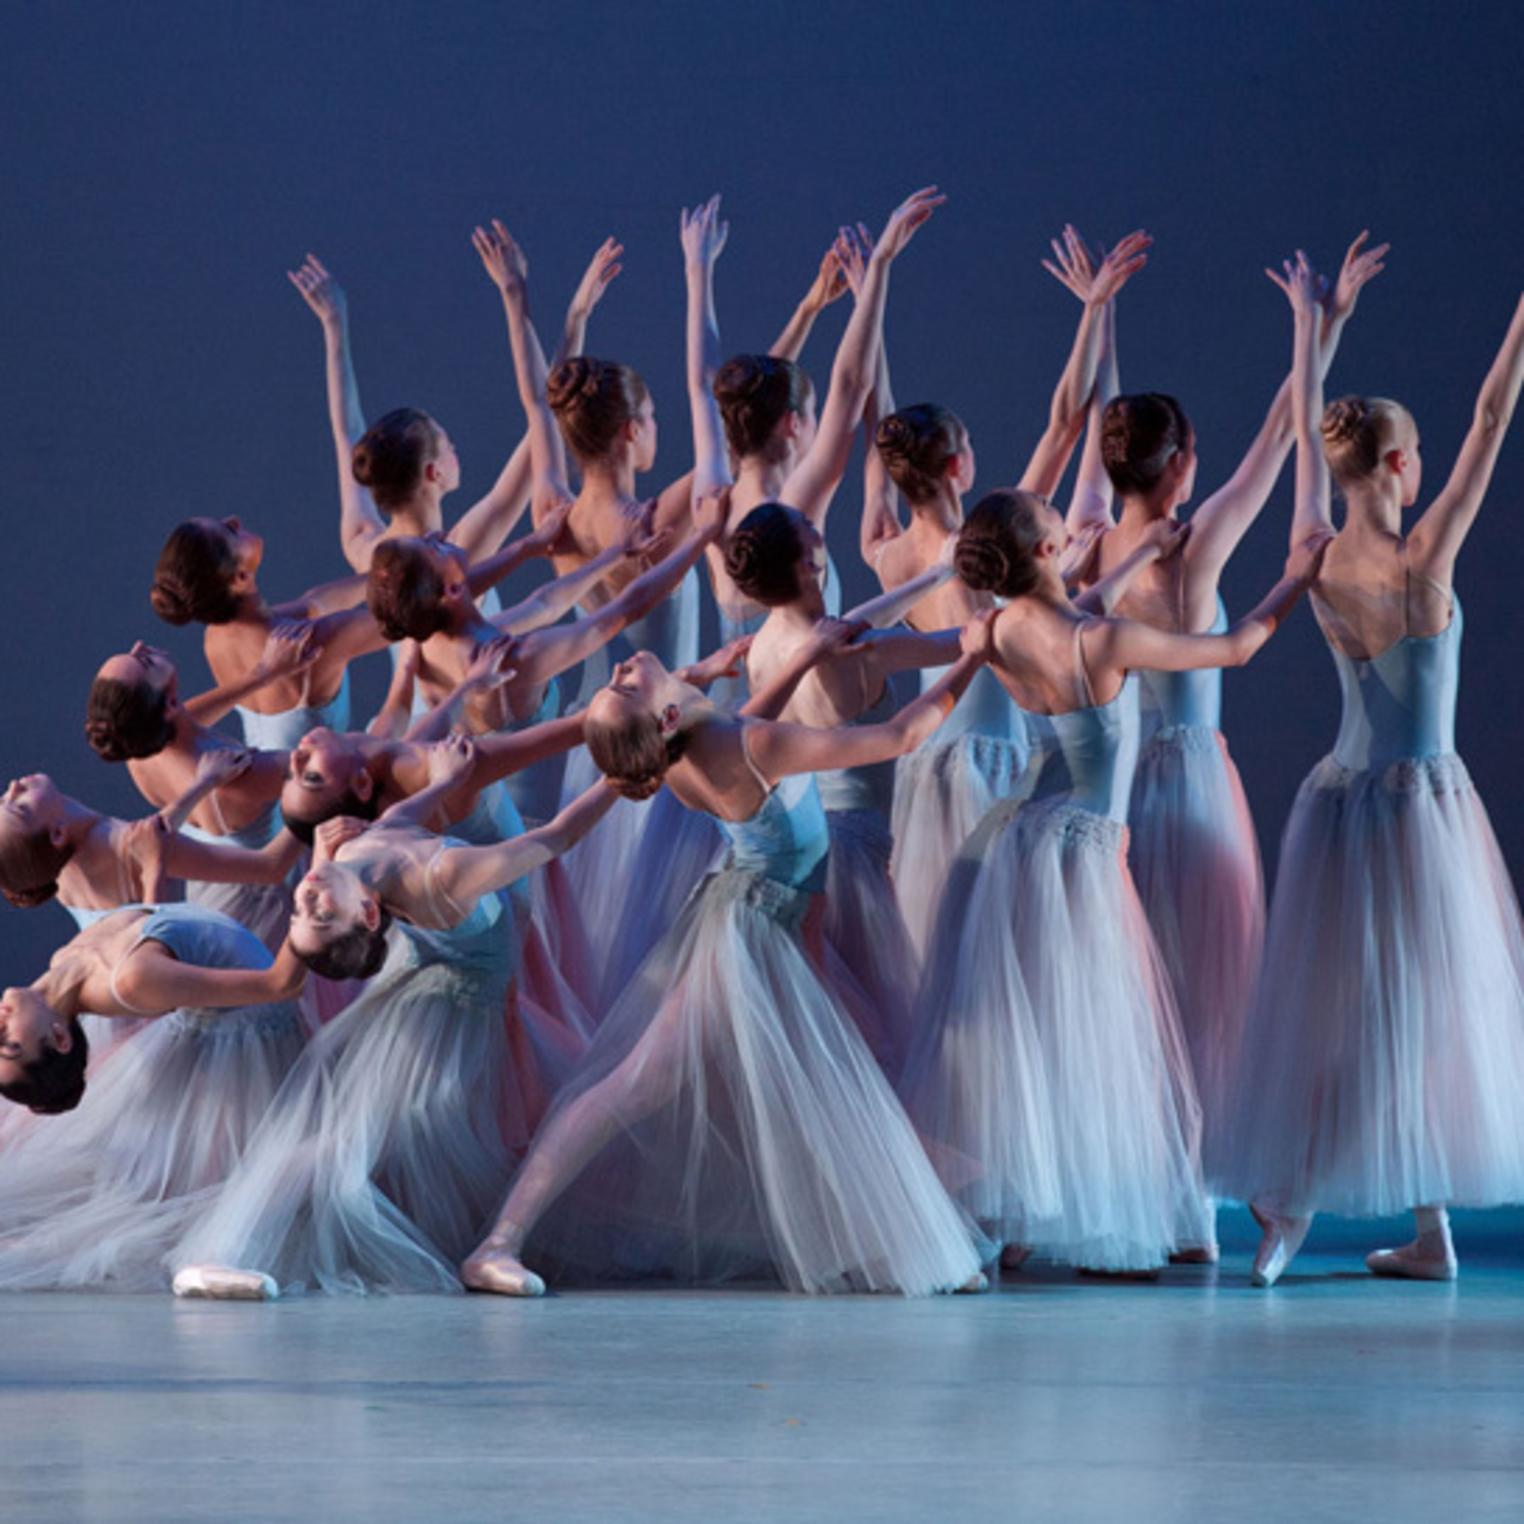 Serenade, choreography by George Balanchine (c) The George Balachine Trust